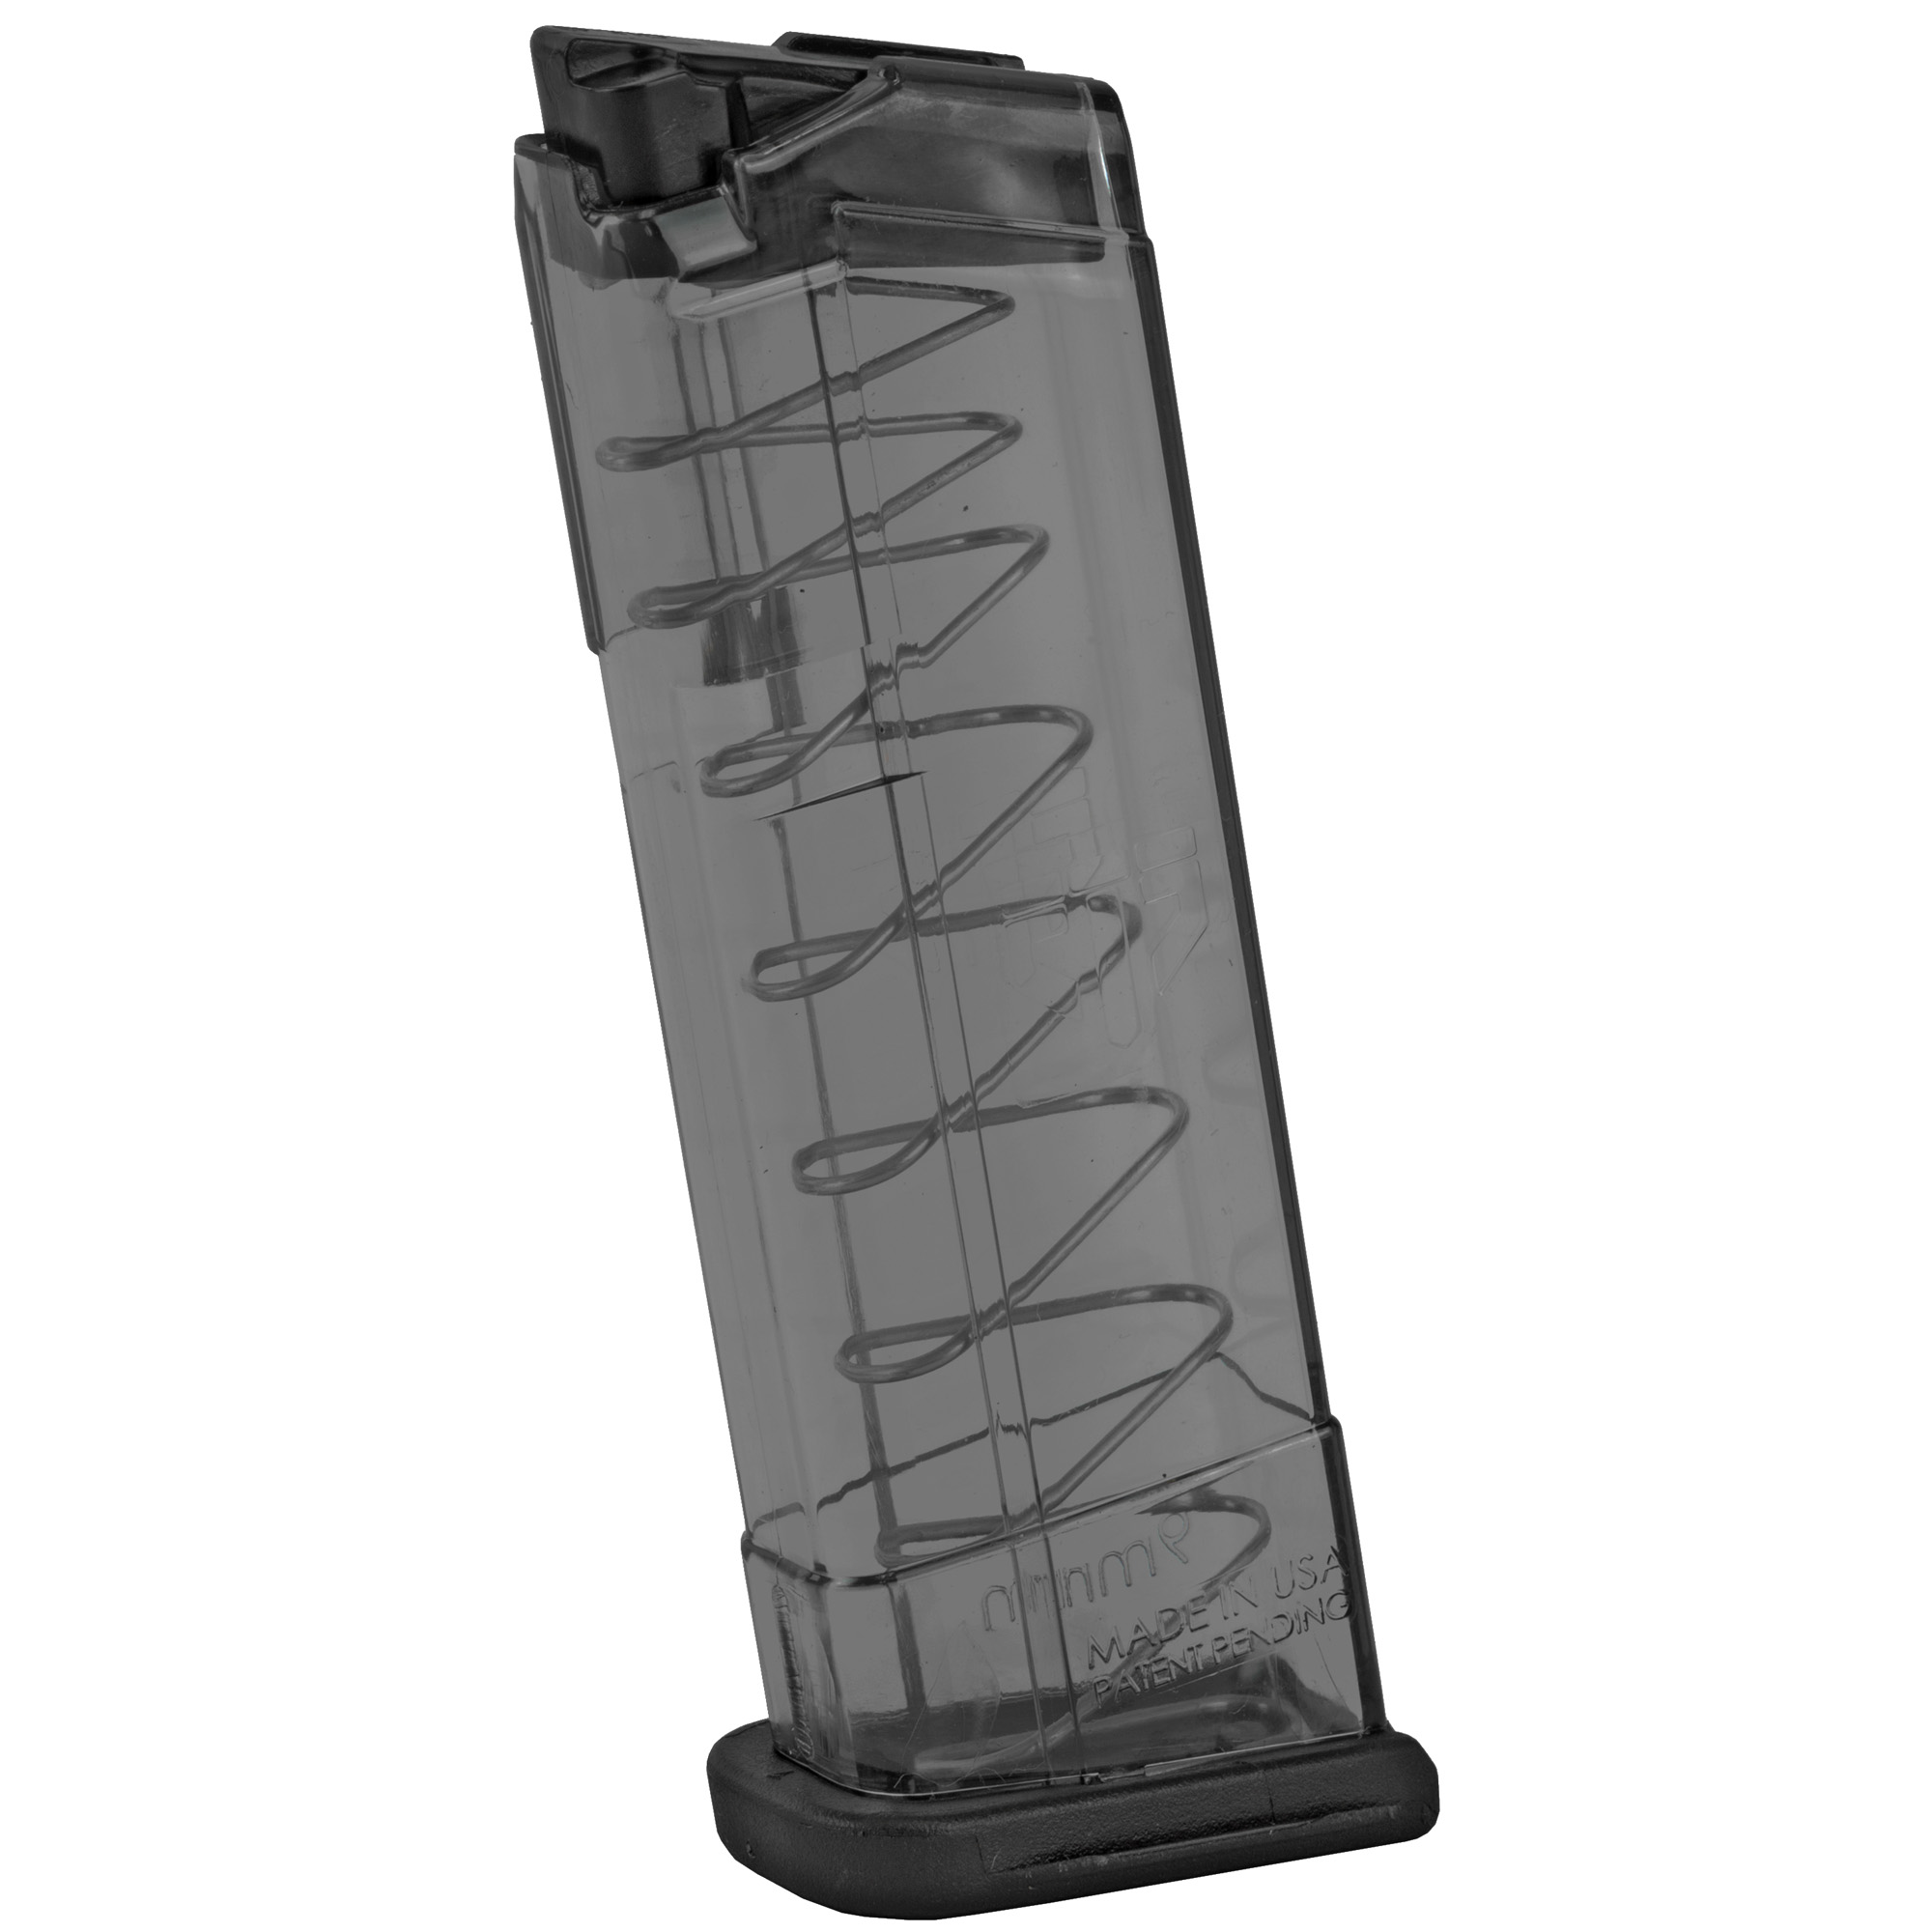 """This ETS magazine features extreme impact resistance"""" creep resistant feed lips and a translucent body that allows you to see your ammo count and type. It is compatible with Glock and aftermarket floorplates."""